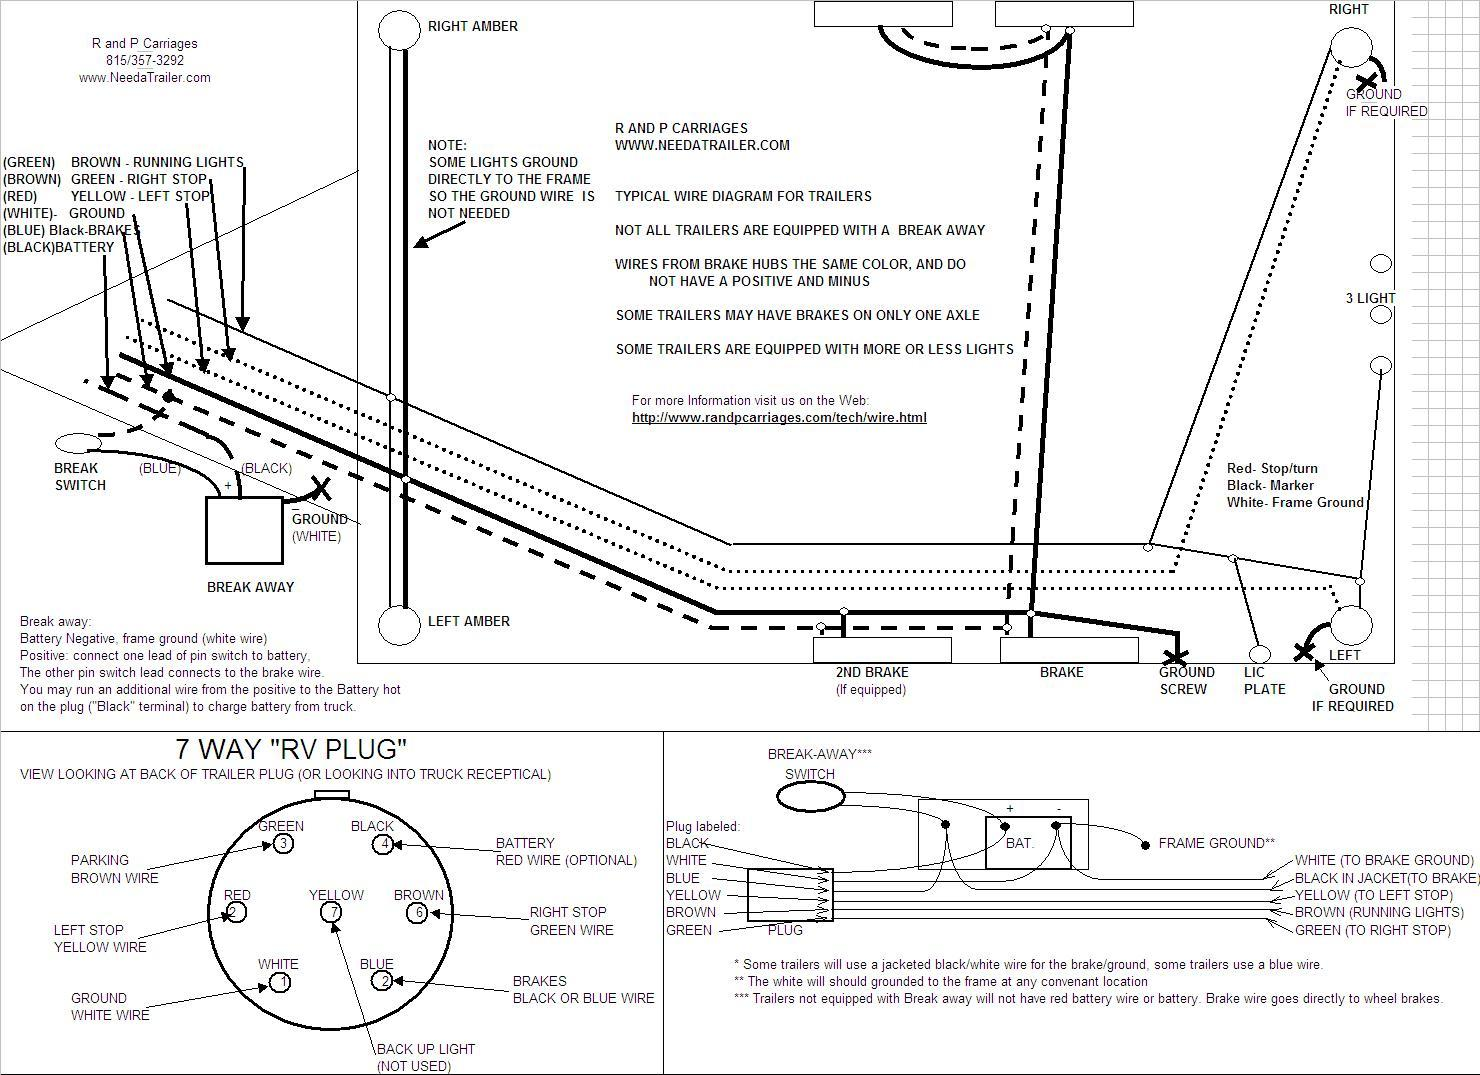 7 way wiring diagram brake controller installation instructions wiring diagram for trailer lights 7 way at aneh.co